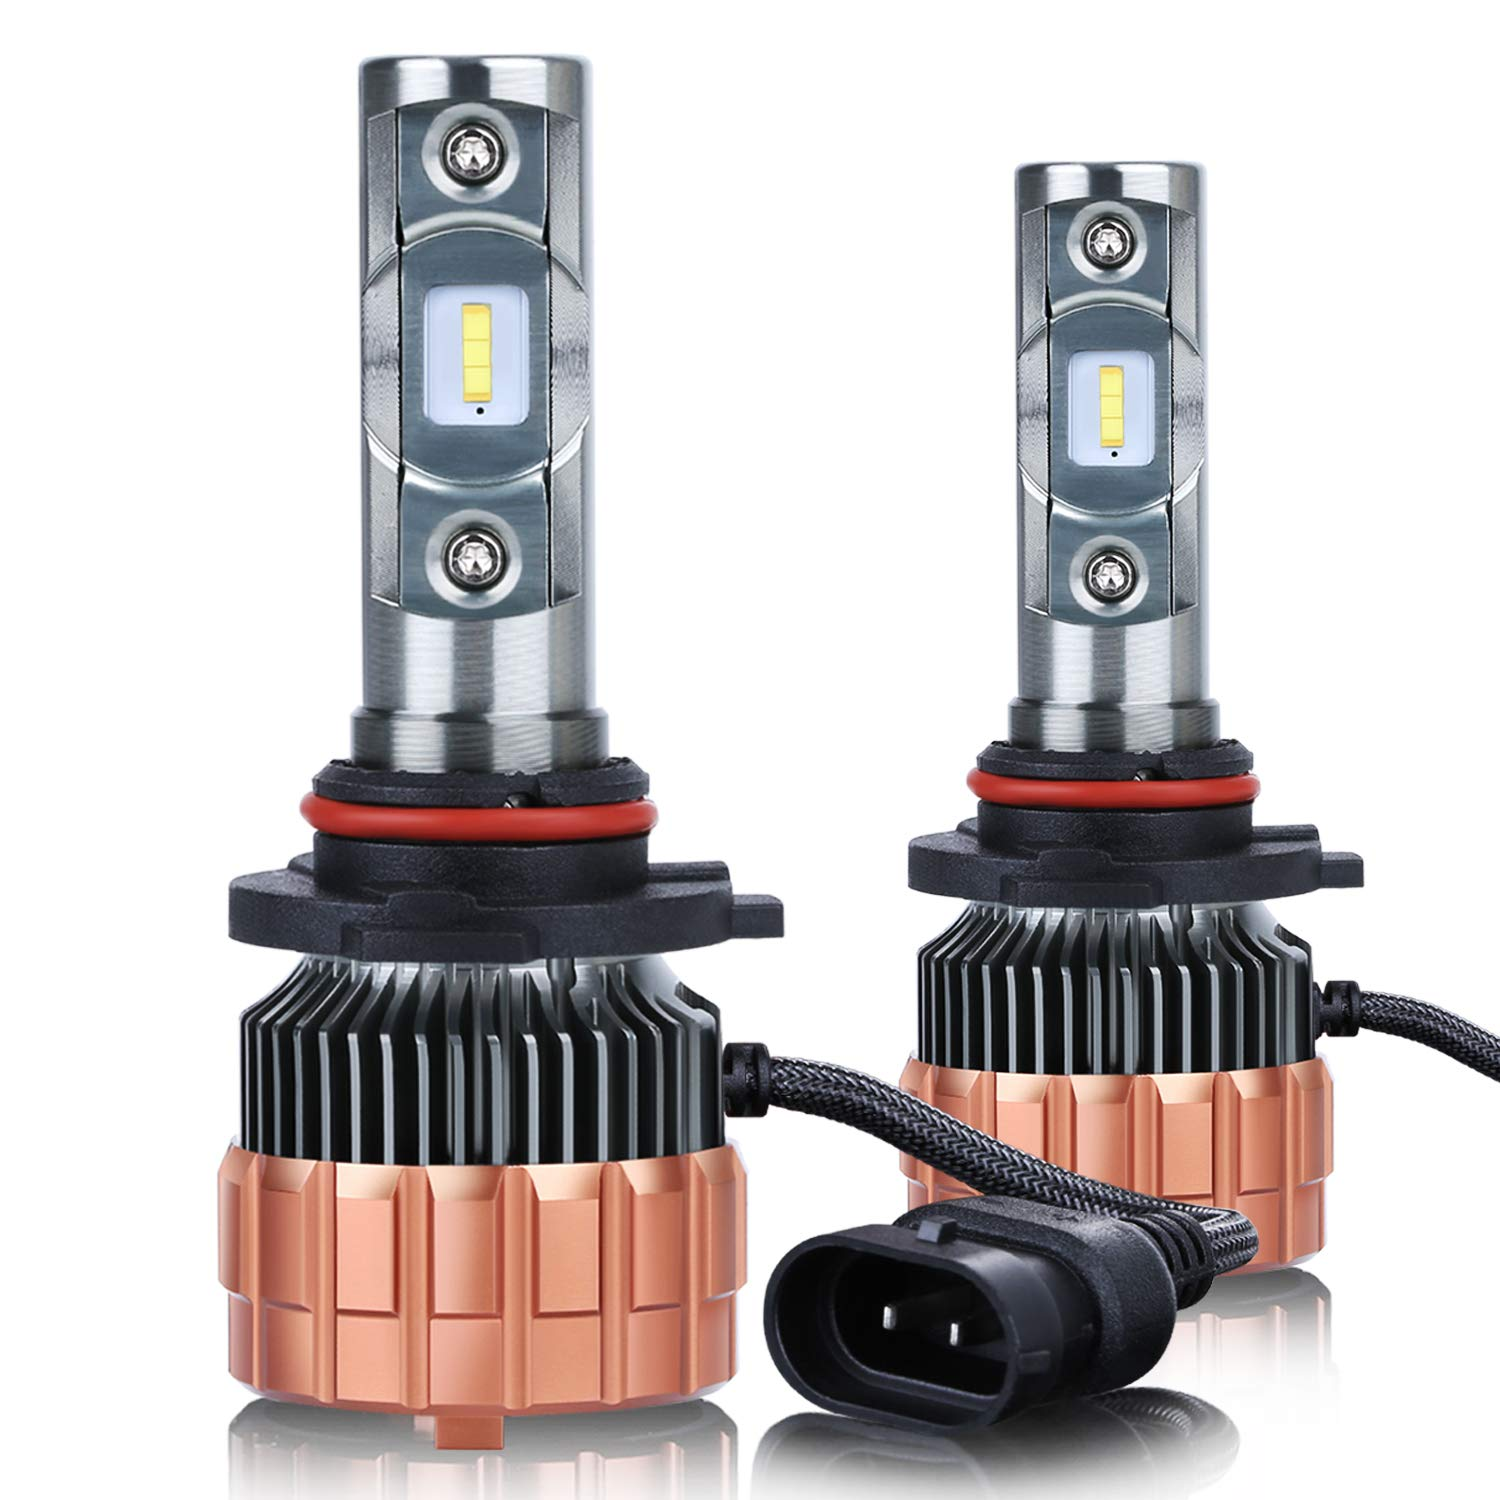 9005//HB3 Led Headlight Bulb 3 Year Warranty Besgoods Super Bright 9006 Headlight Bulbs All-in-One Conversion Kit CSP Chips With 6000 Lumens 60W 5700K Cool White